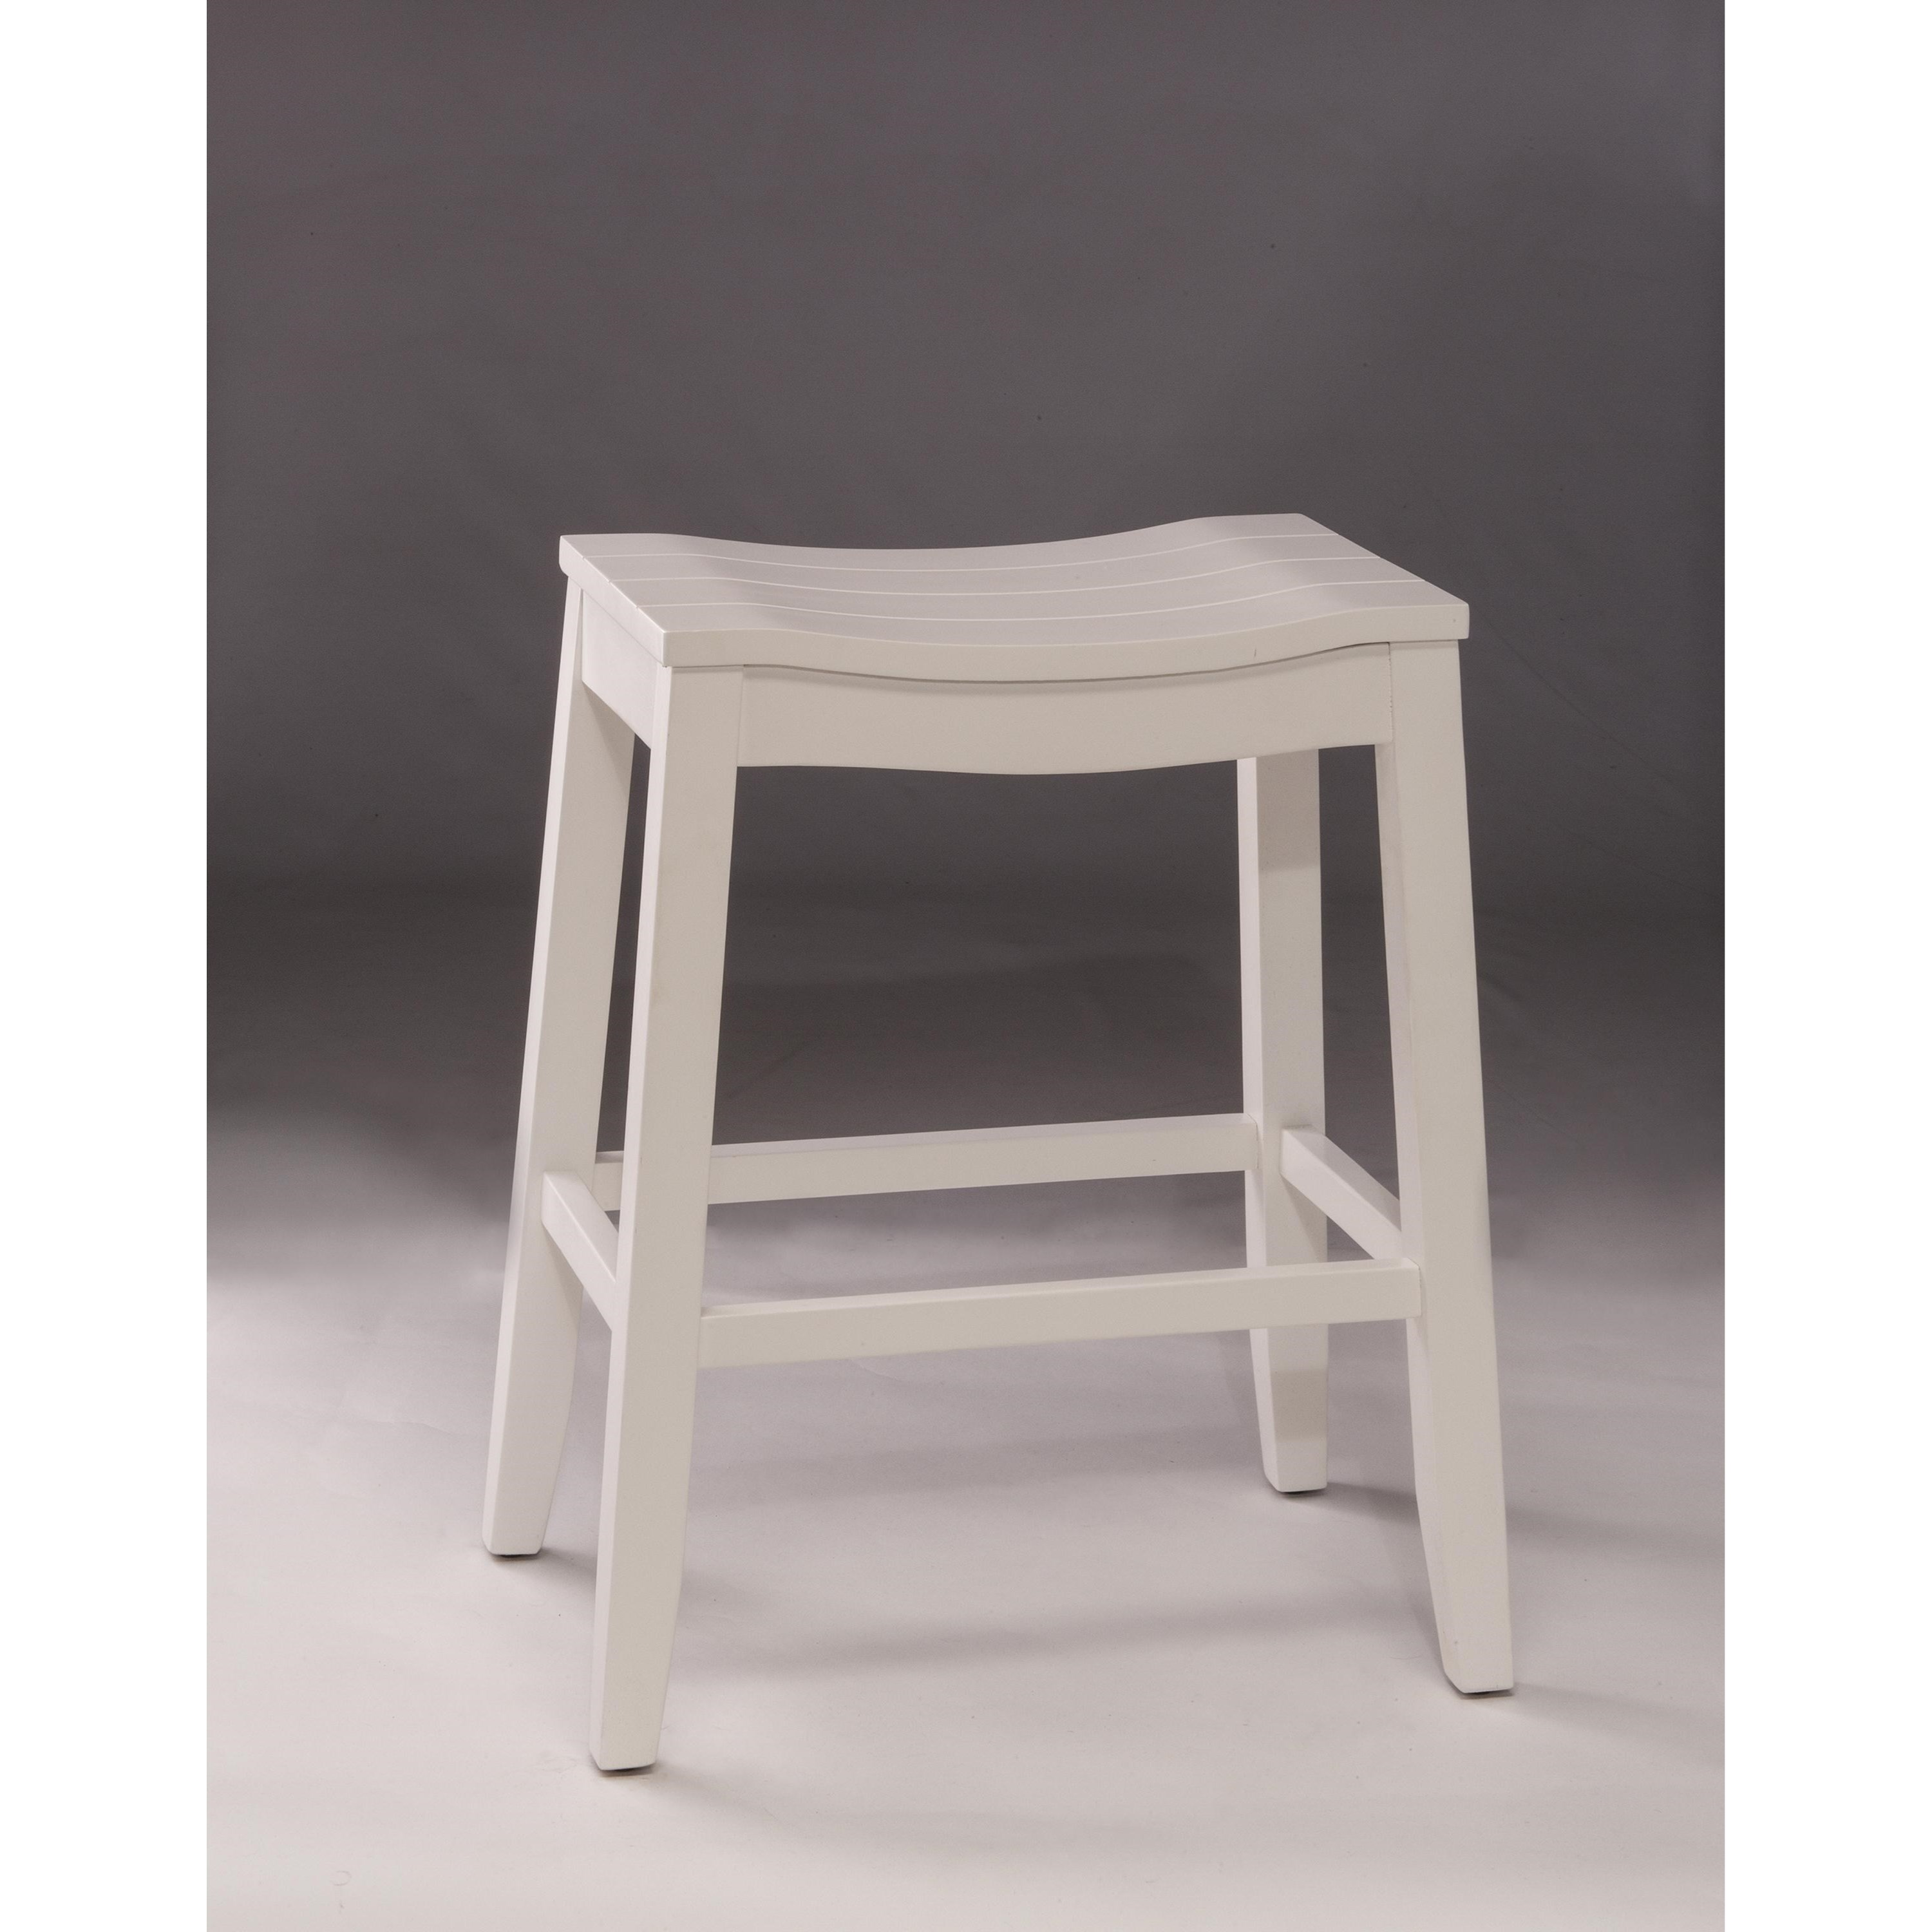 Hillsdale Backless Bar Stools 5947 826 White Backless Non